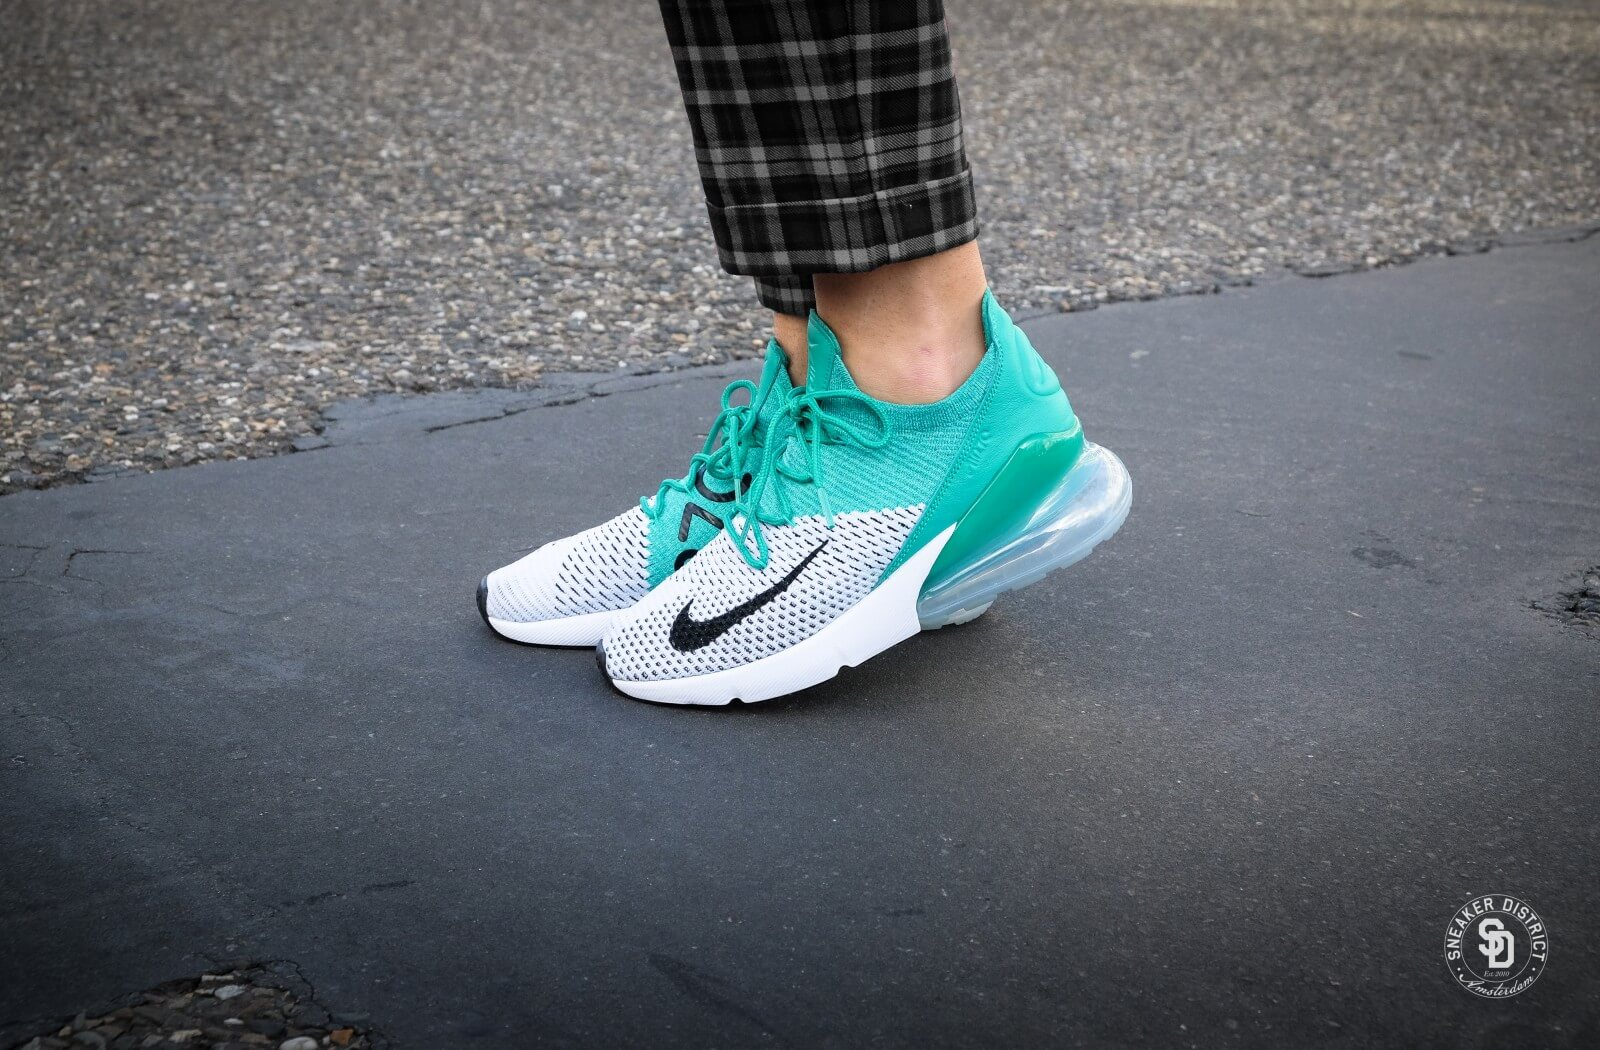 ed94bd4bb4bc Nike Women S Air Max 270 Flyknit Clear Emerald Black White Ah6803 300